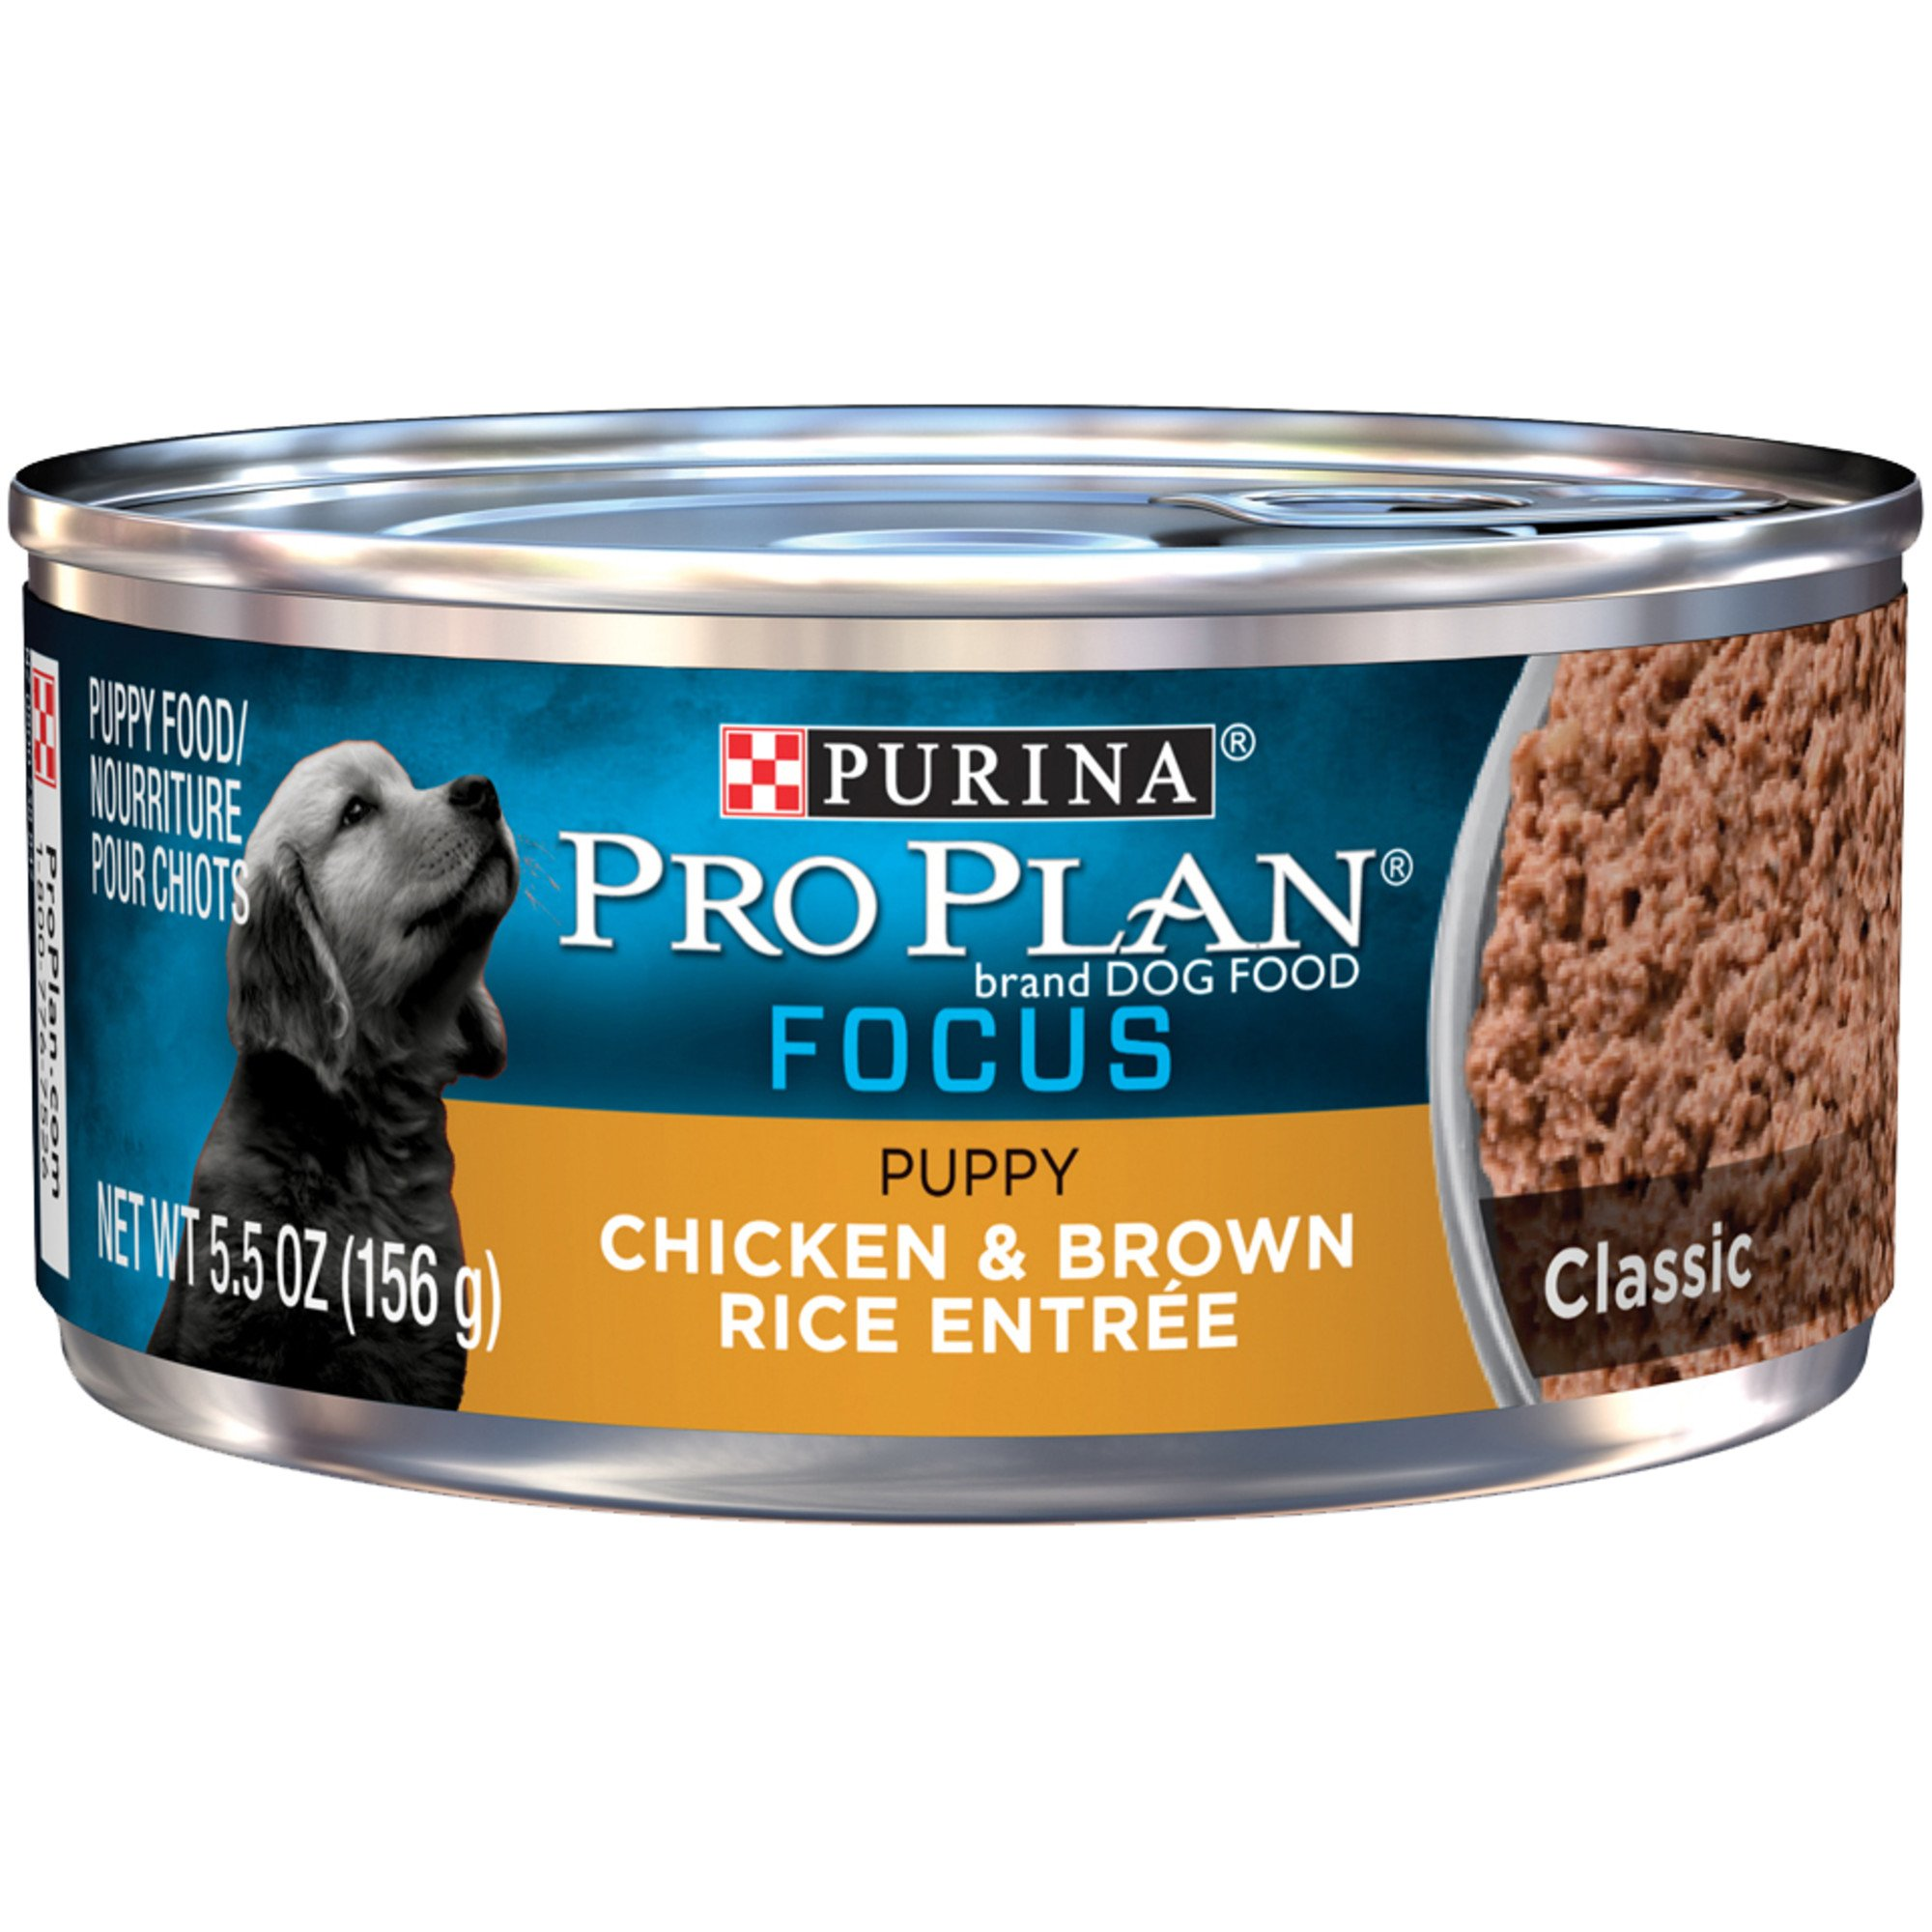 Pro Plan Focus Chicken & Brown Rice Canned Puppy Food